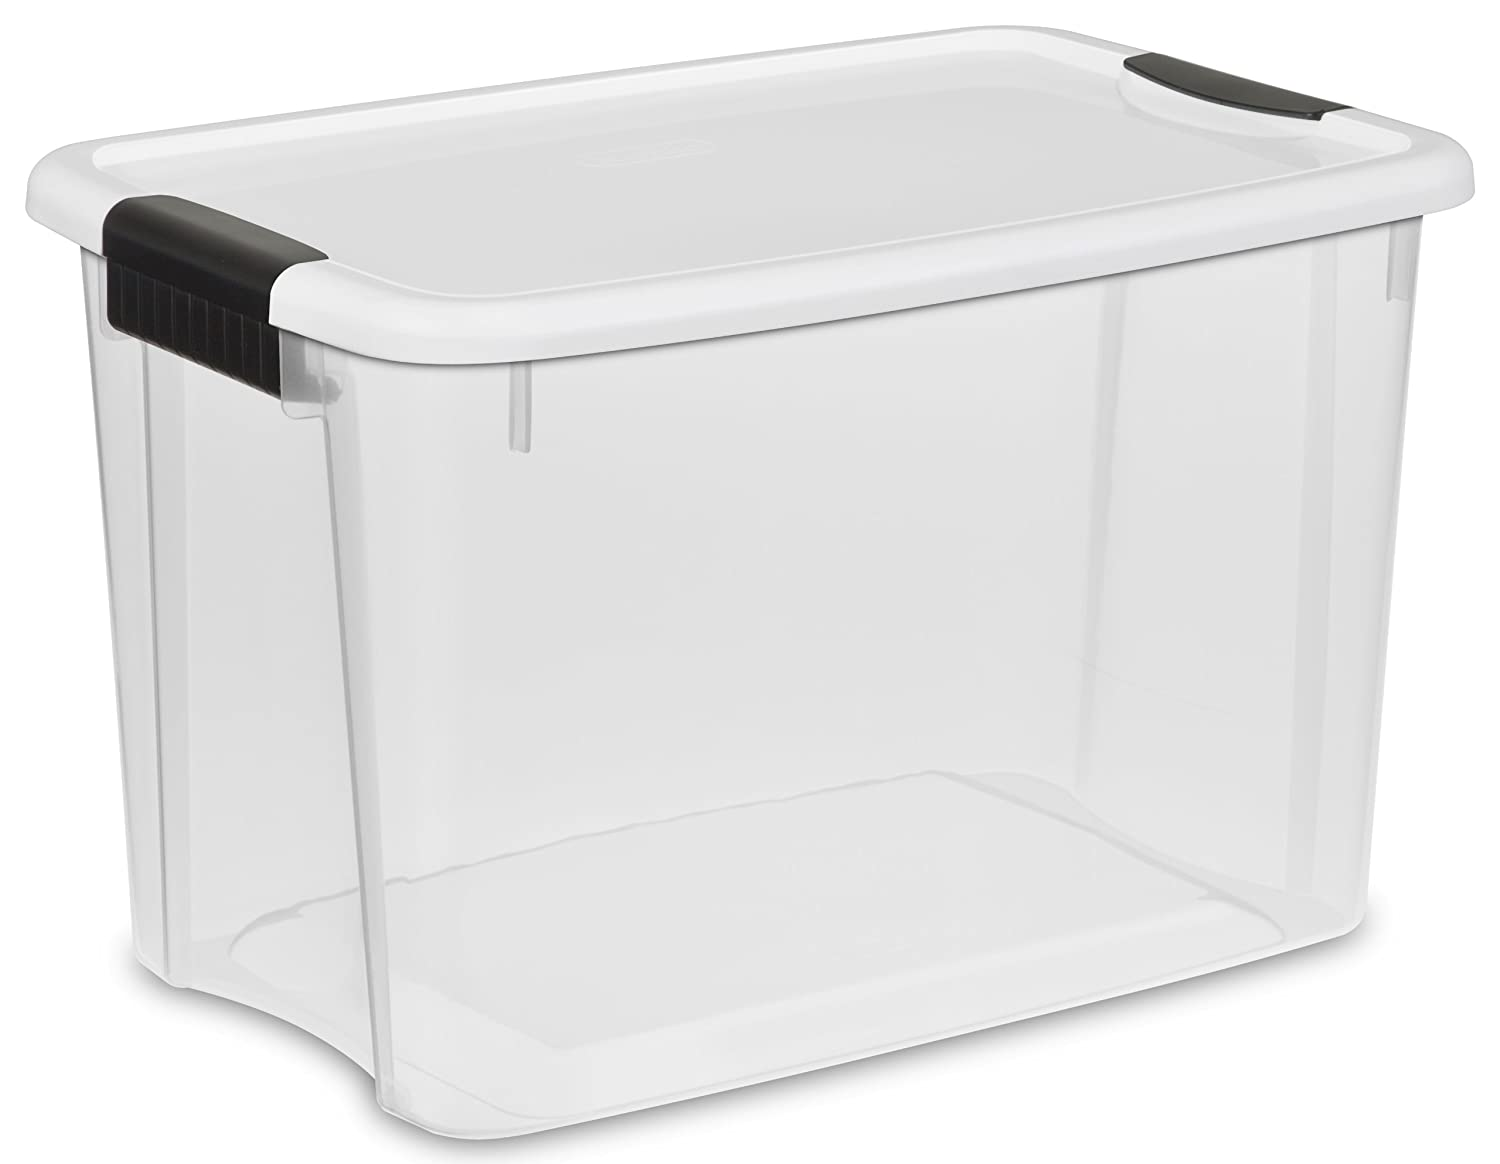 plastic tubs ideas clear decorating tub containers wonderful storage with home for